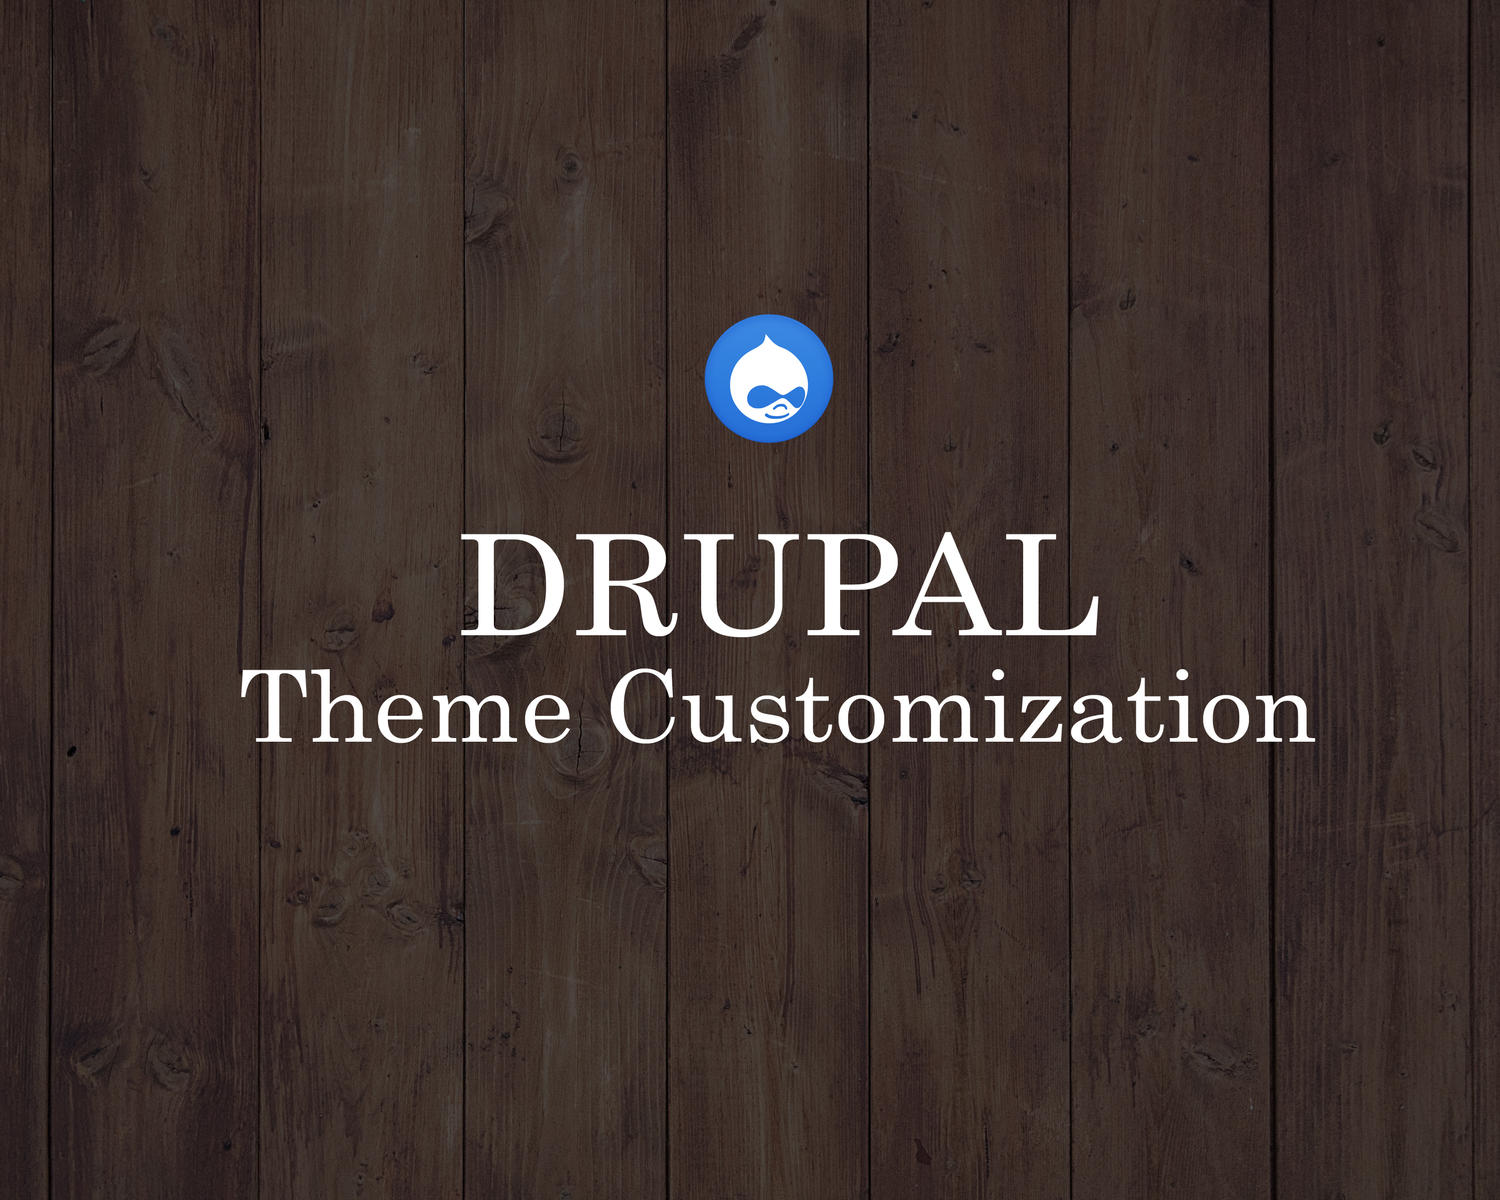 Advanced Drupal Theme Customization by hasanet - 106300